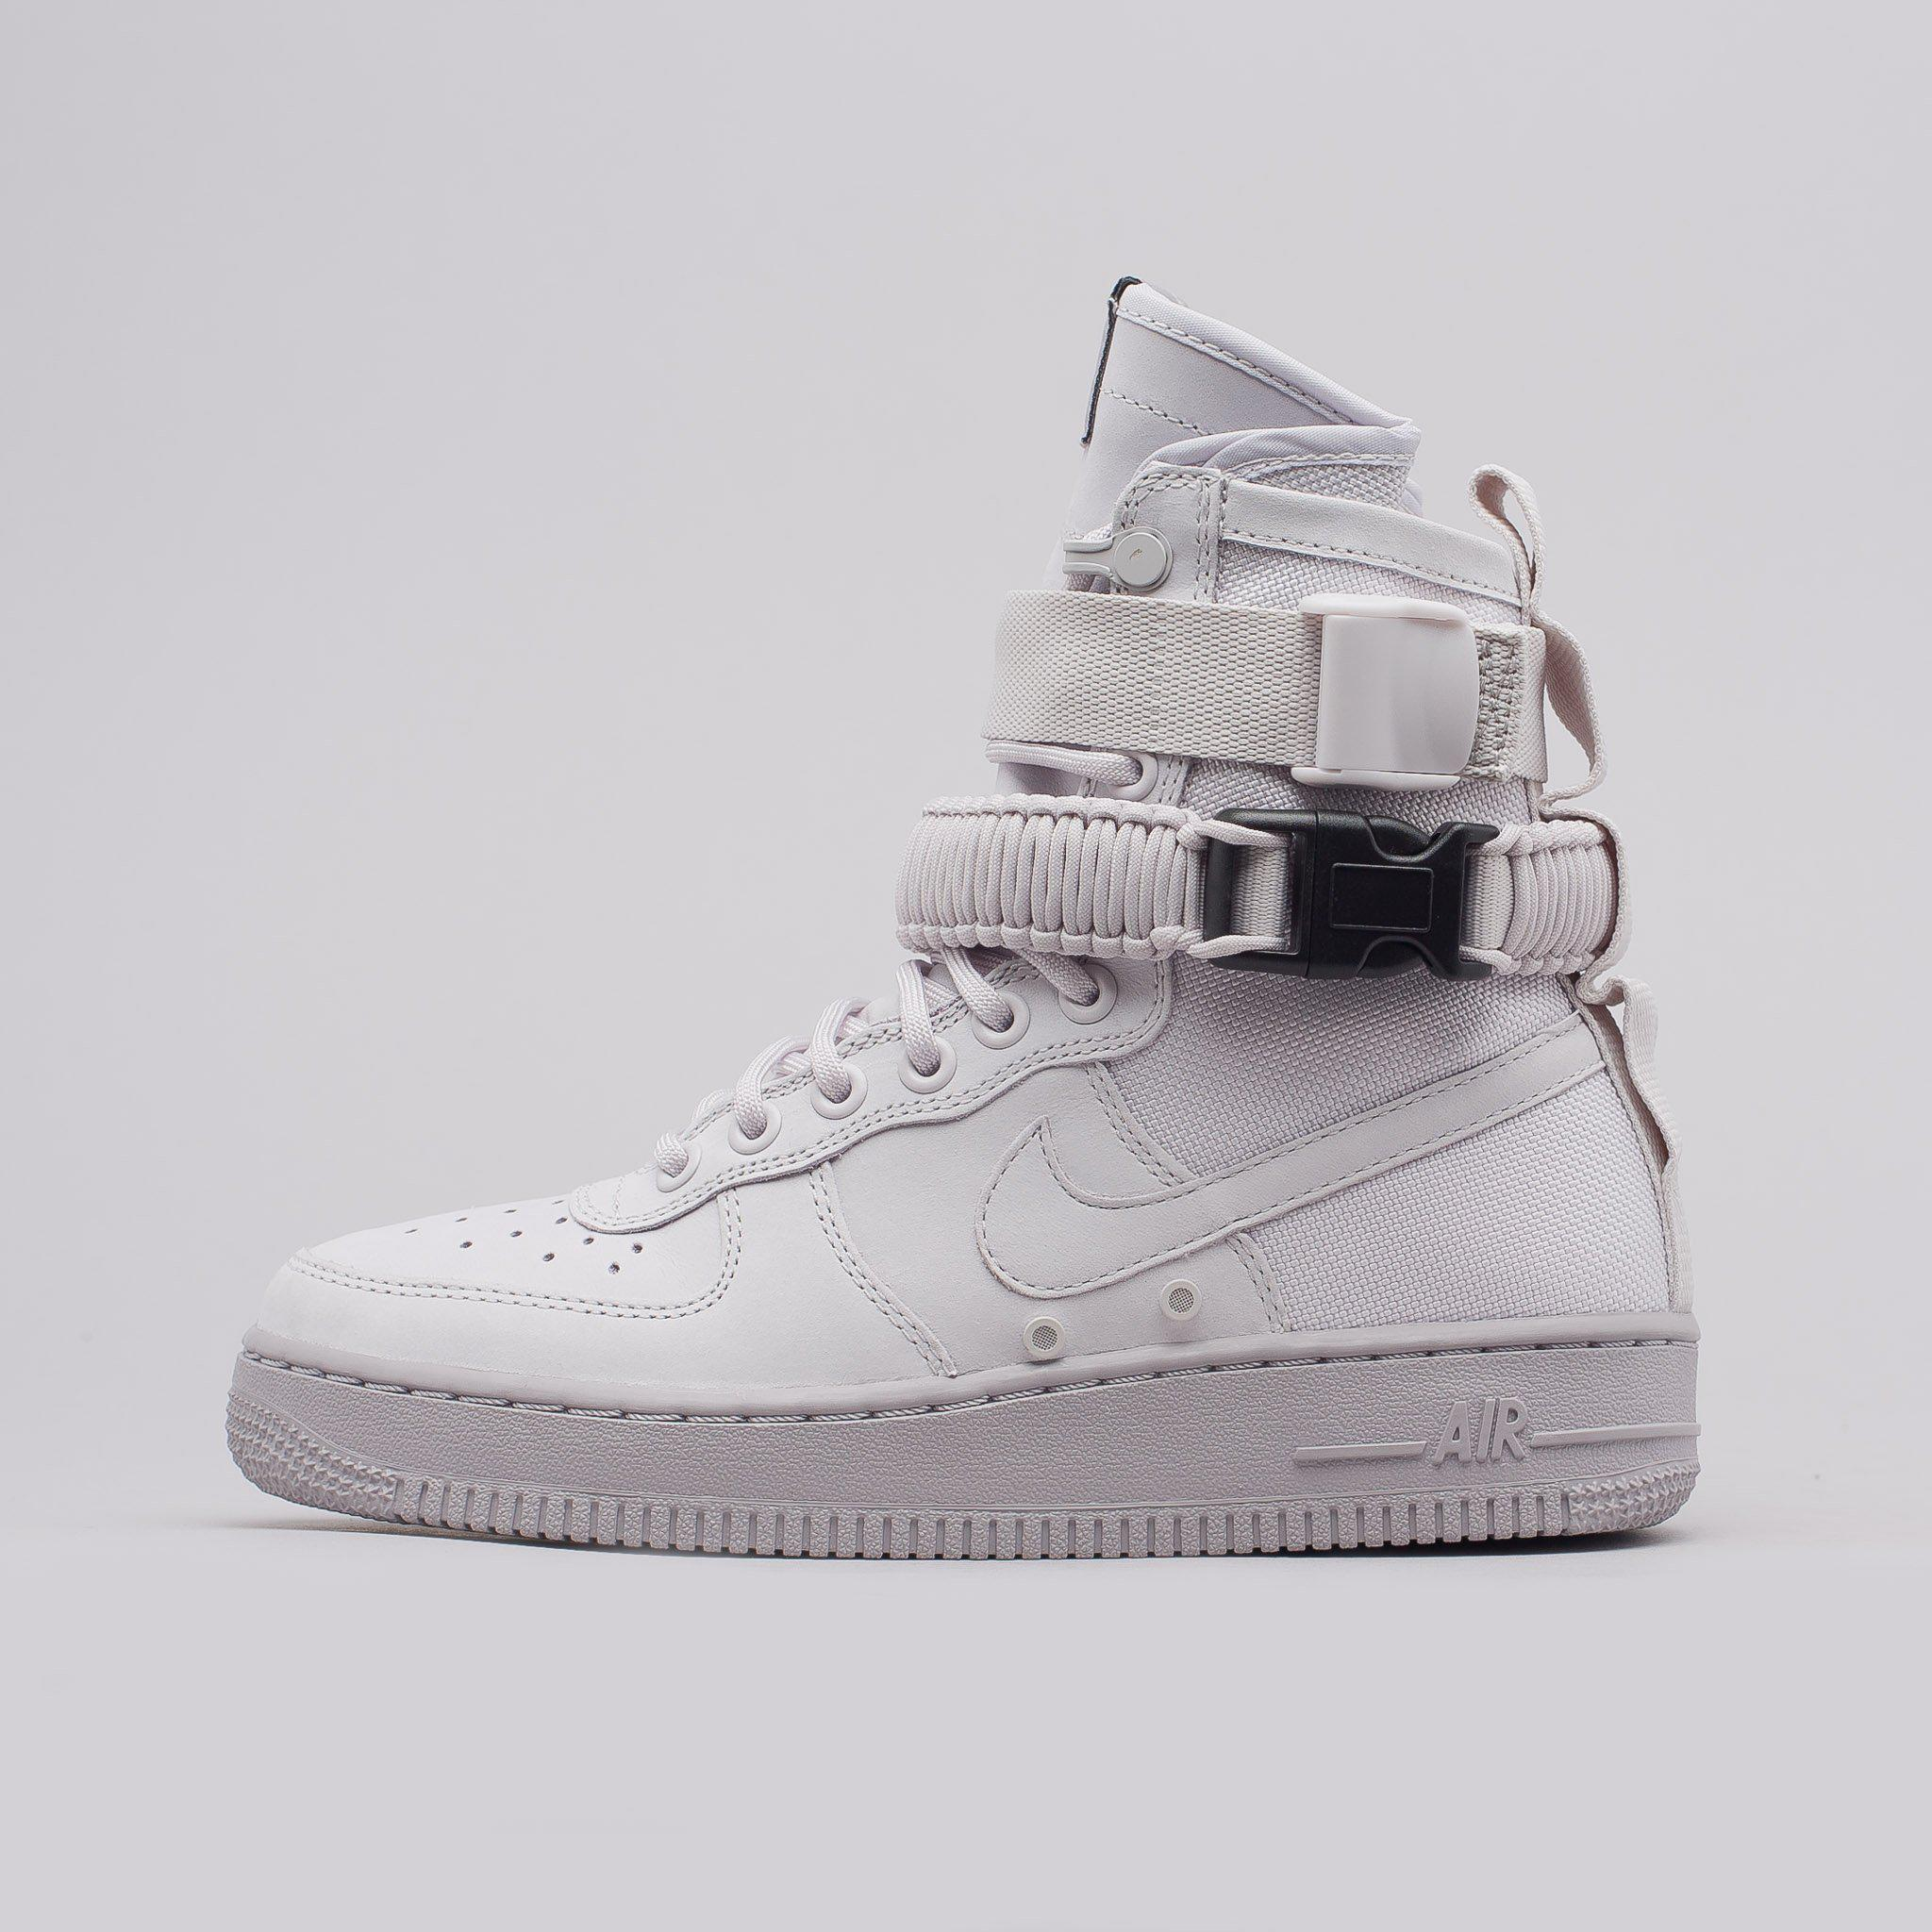 Lyst - Nike Women s Special Field Air Force 1 In Vast Grey in Gray ... 5035aef104